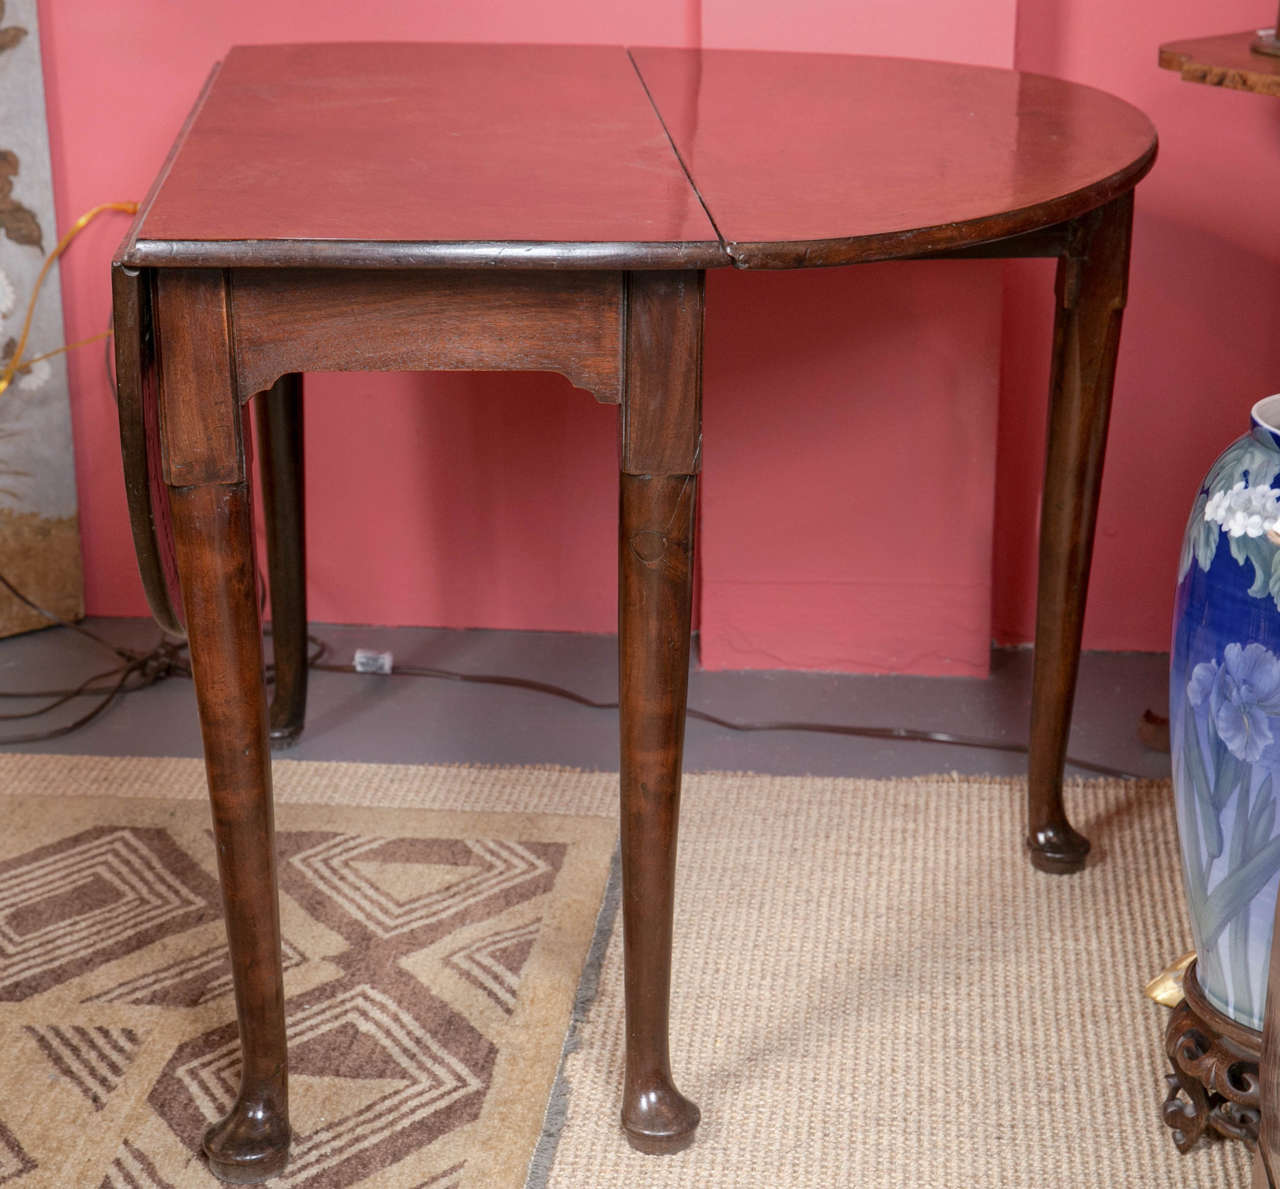 Queen Anne Mahogany DropLeaf Table For Sale at 1stdibs